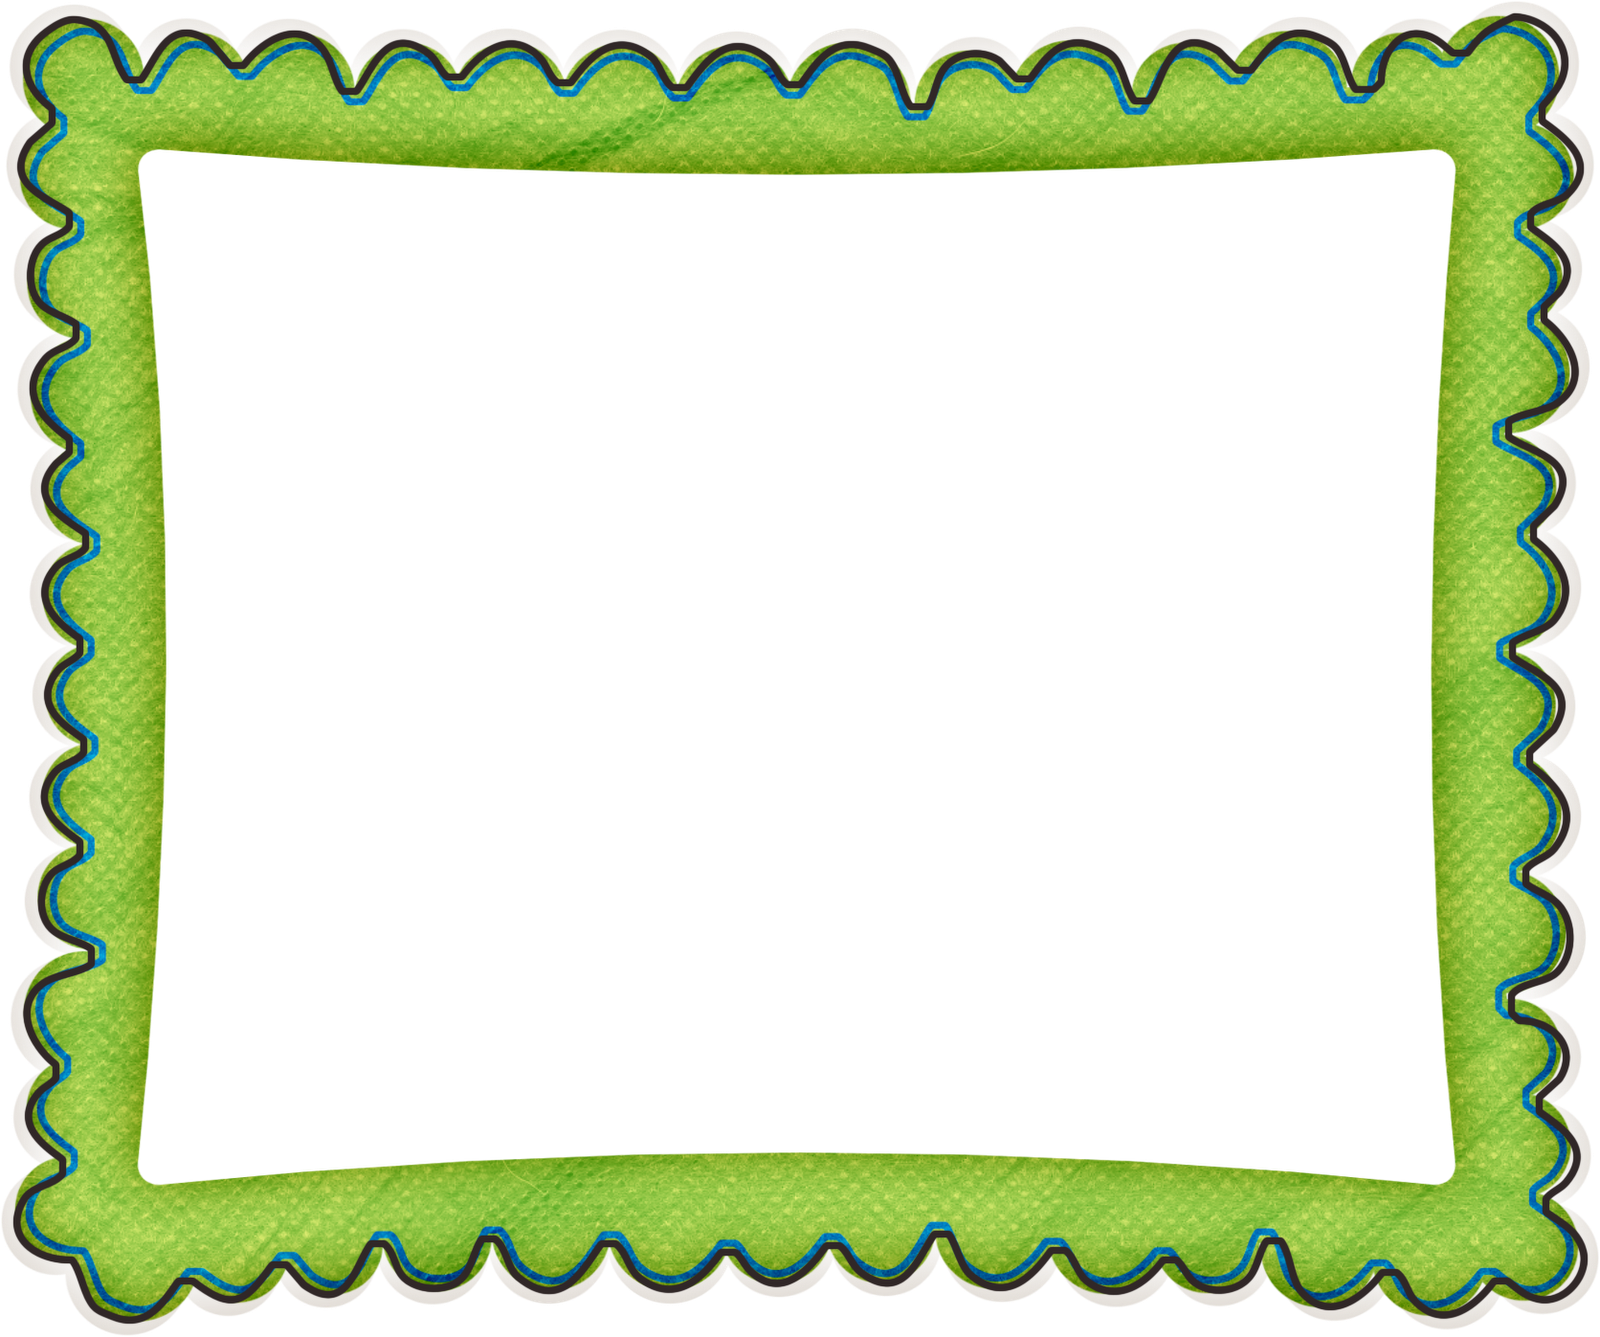 Clipart borders playground. And frames png marcos